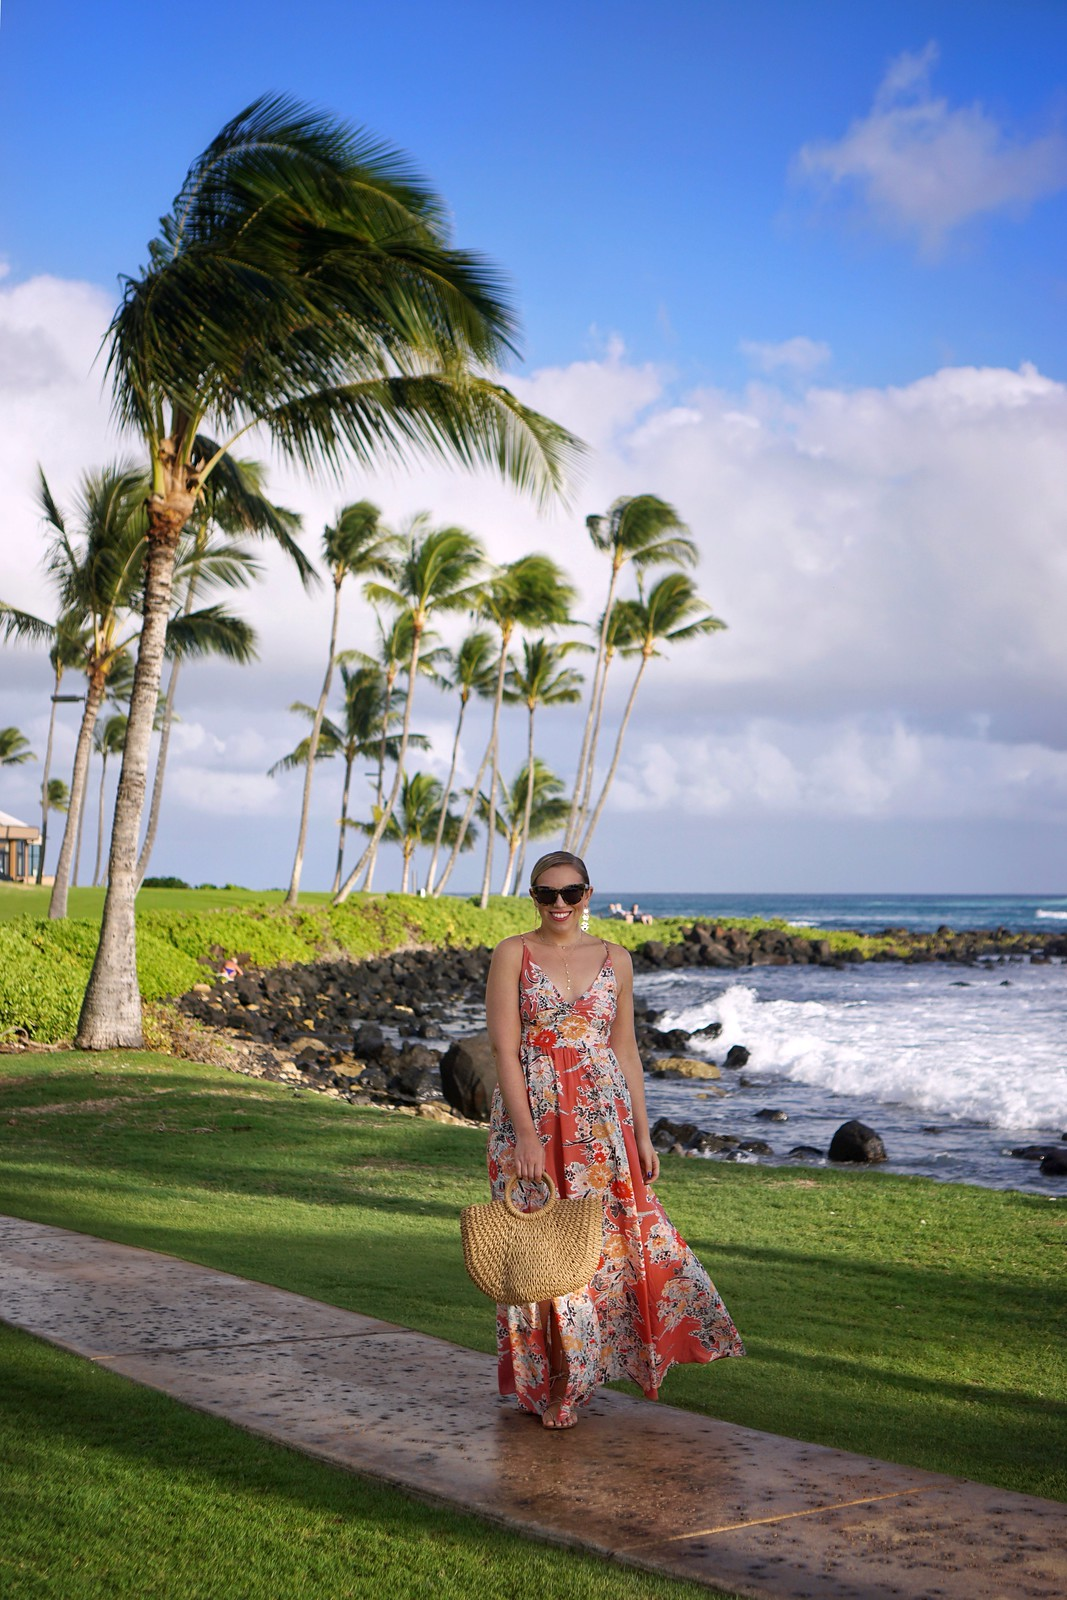 How to Buy EXTREMELY Discounted Free People Clothes   Free People Through the Vine Maxi Dress   Hawaii Outfit   Vacation Outfit Inspiration   What to Wear in Hawaii